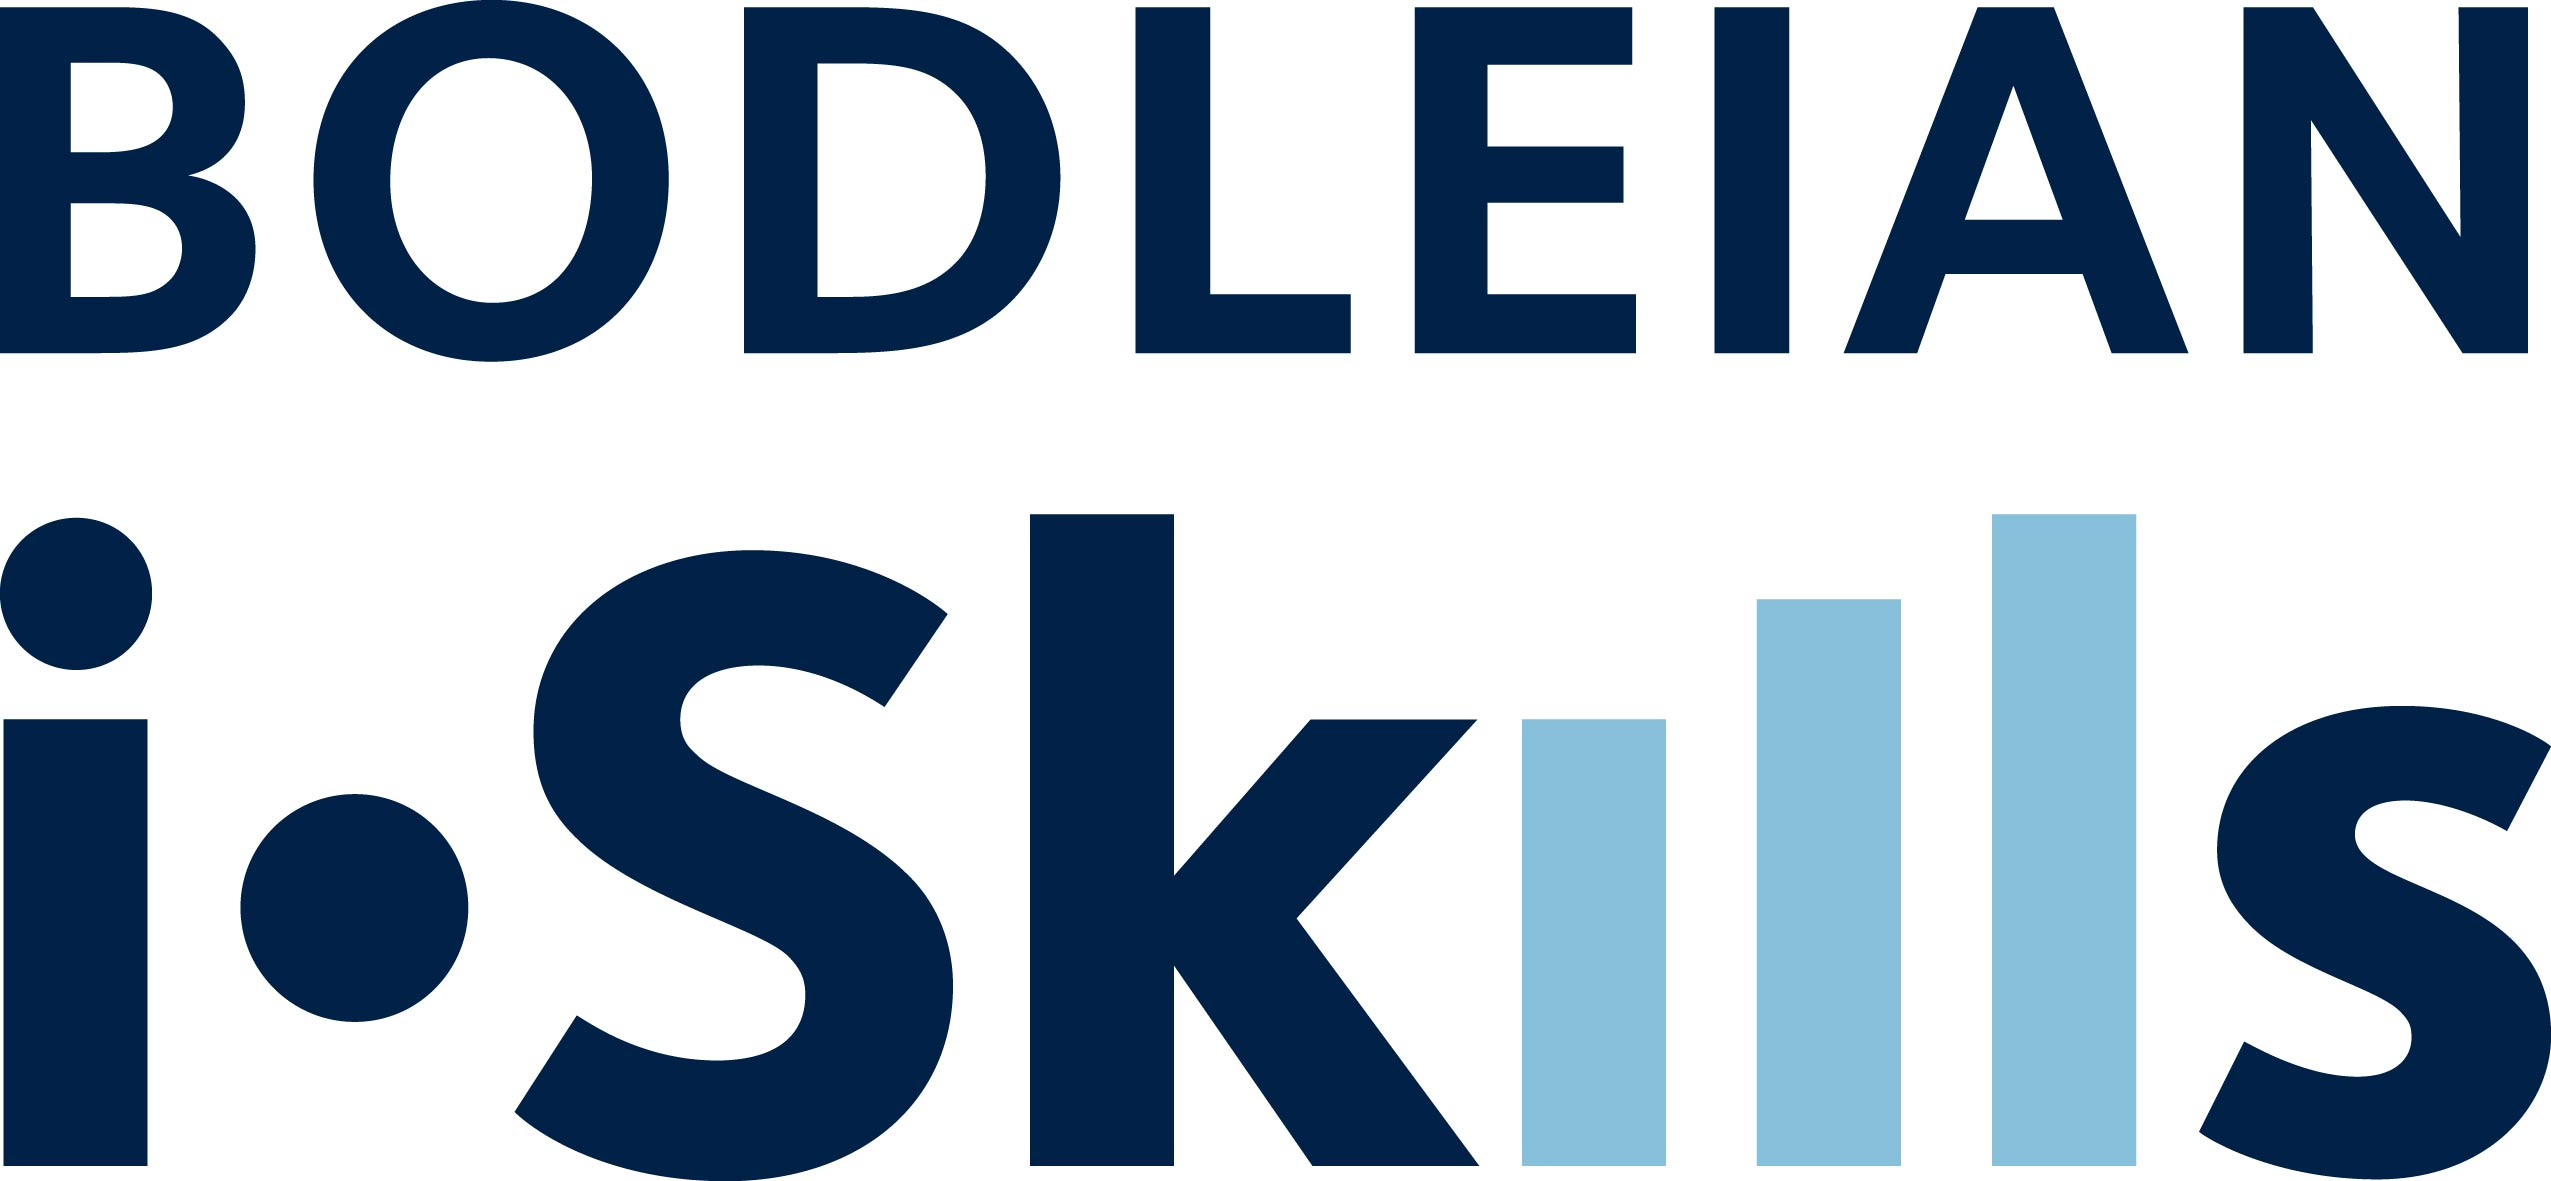 Bodleian iSkills Logo which features the words BODLEIAN iSkills in Blue text